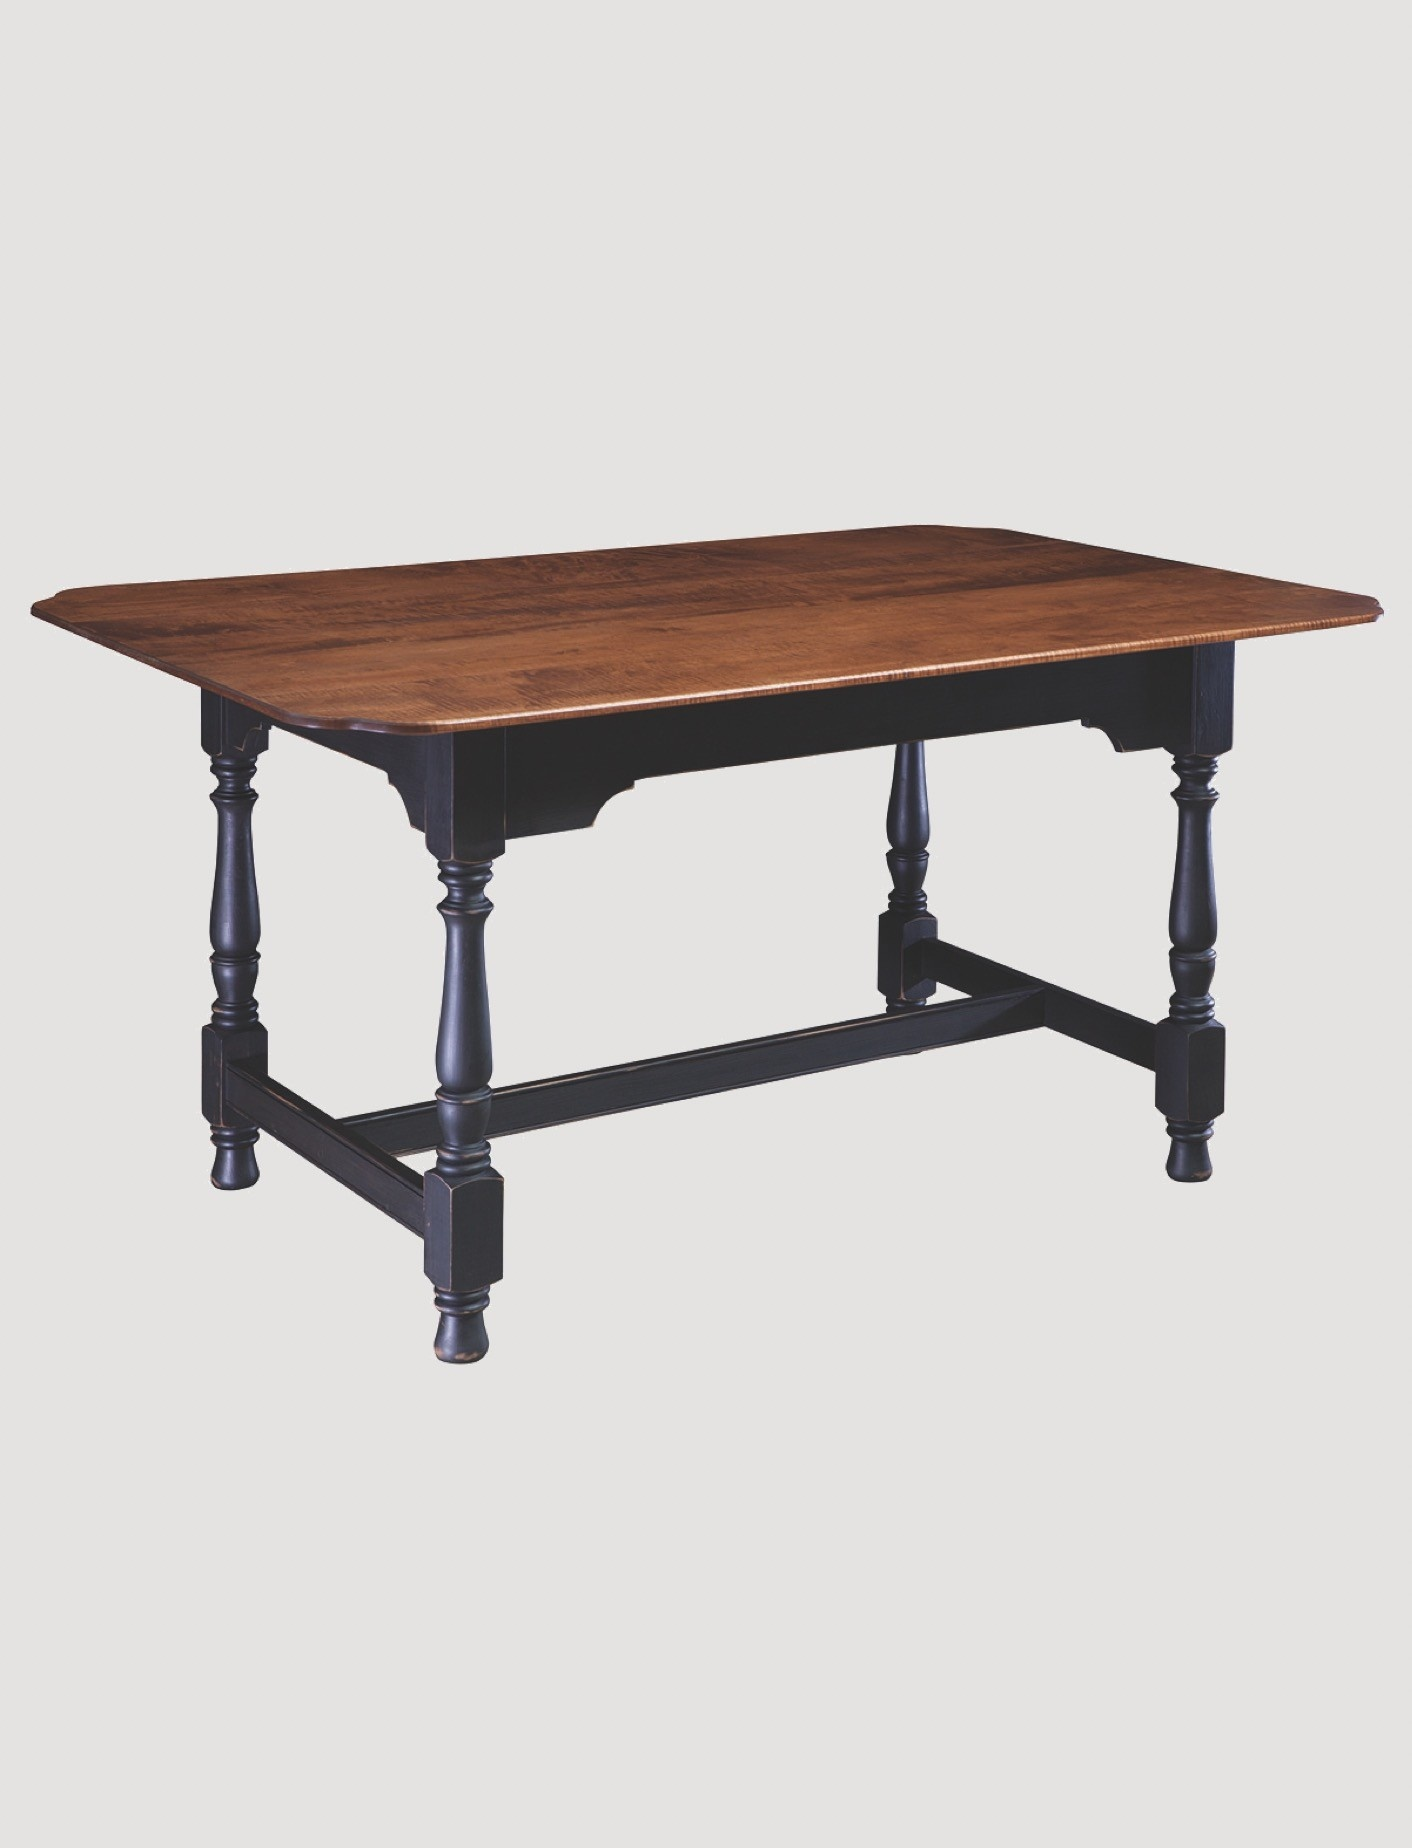 Dining Table Designs Harvest Tiger Maple Top Dining Table With Black Rubbed Legs